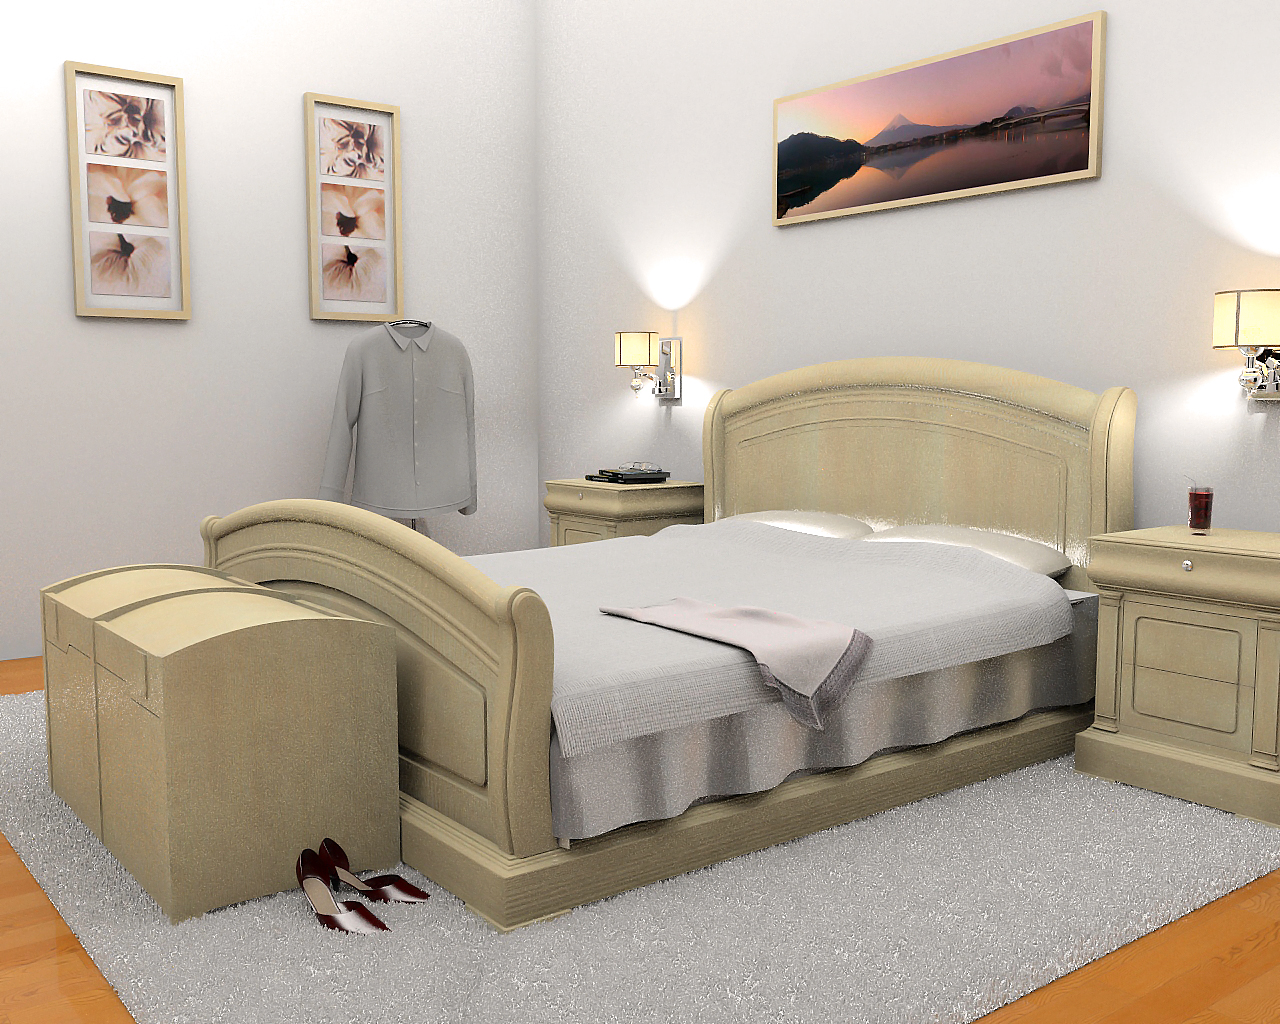 3d interior design models by paz sieiro for Bedroom ideas quiz